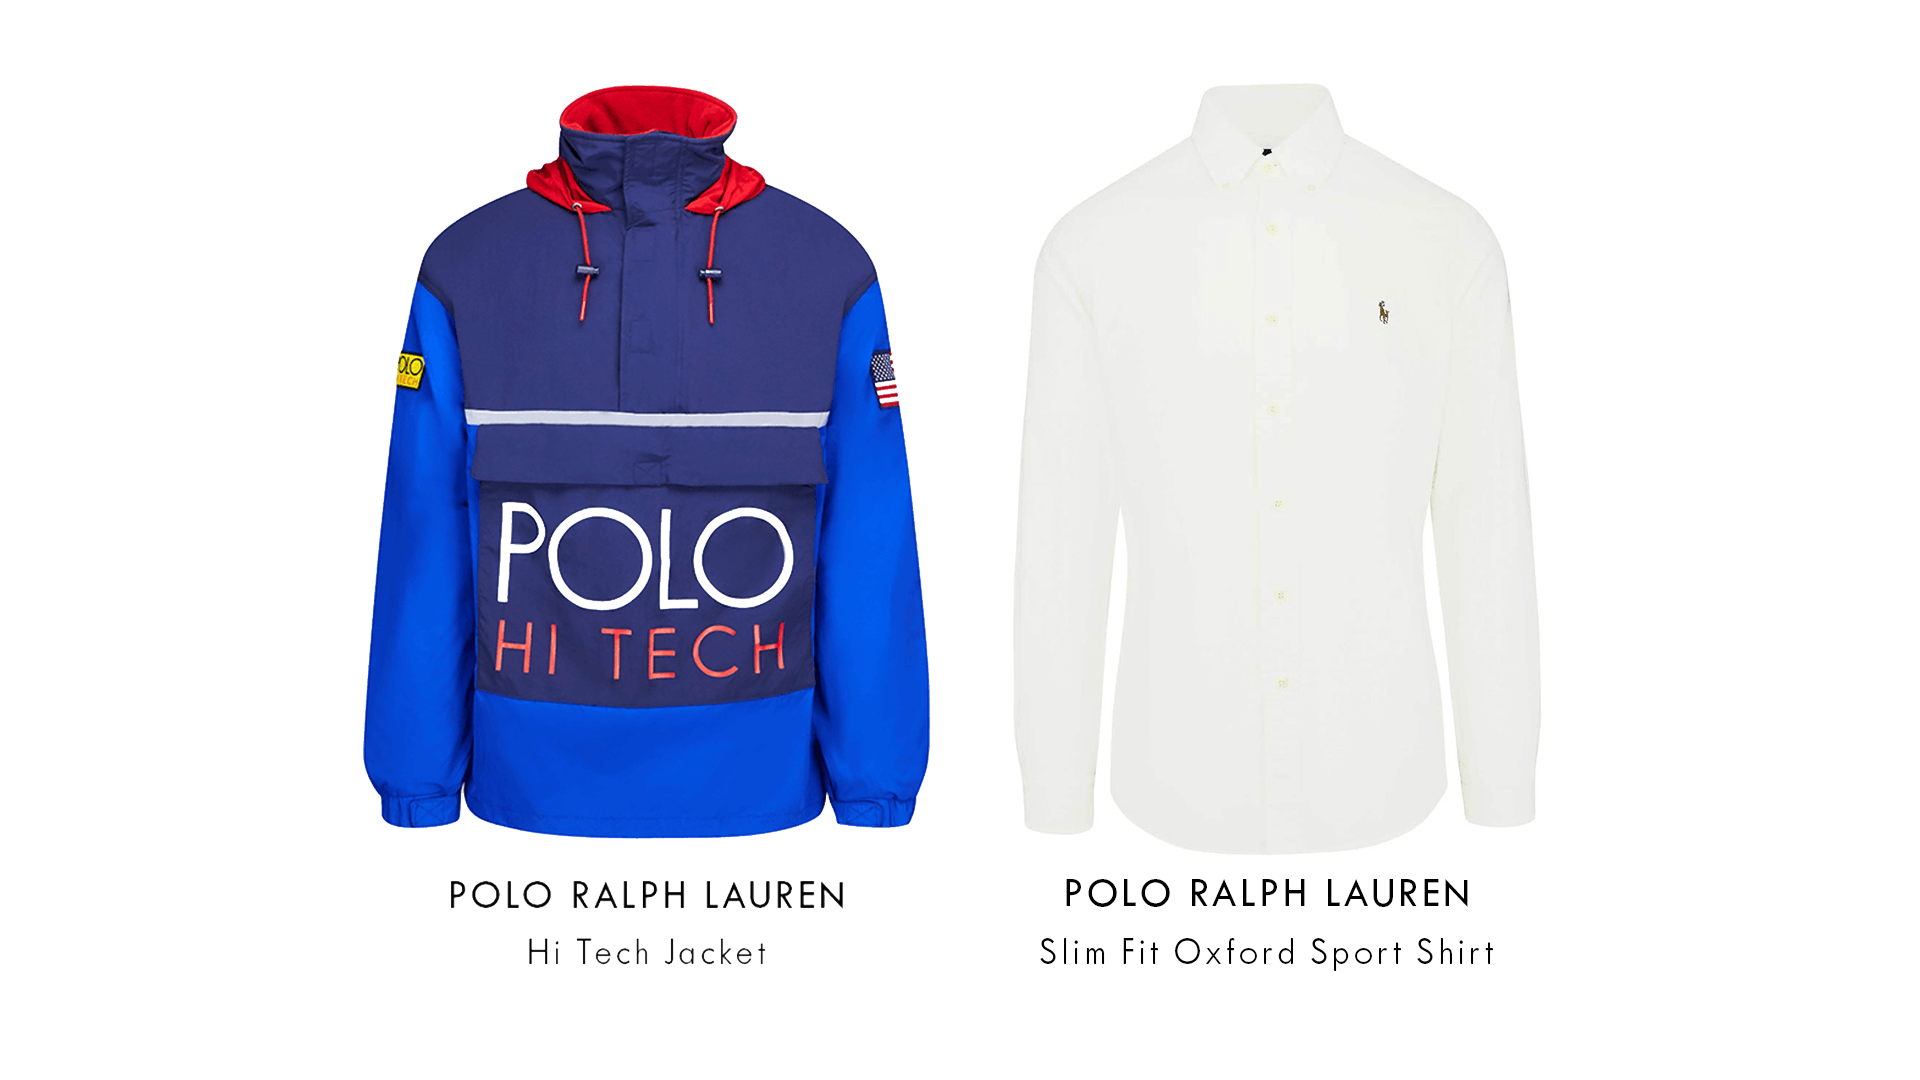 Polo Ralph Lauren Hi Tech Athleisure Blog Post Look 02